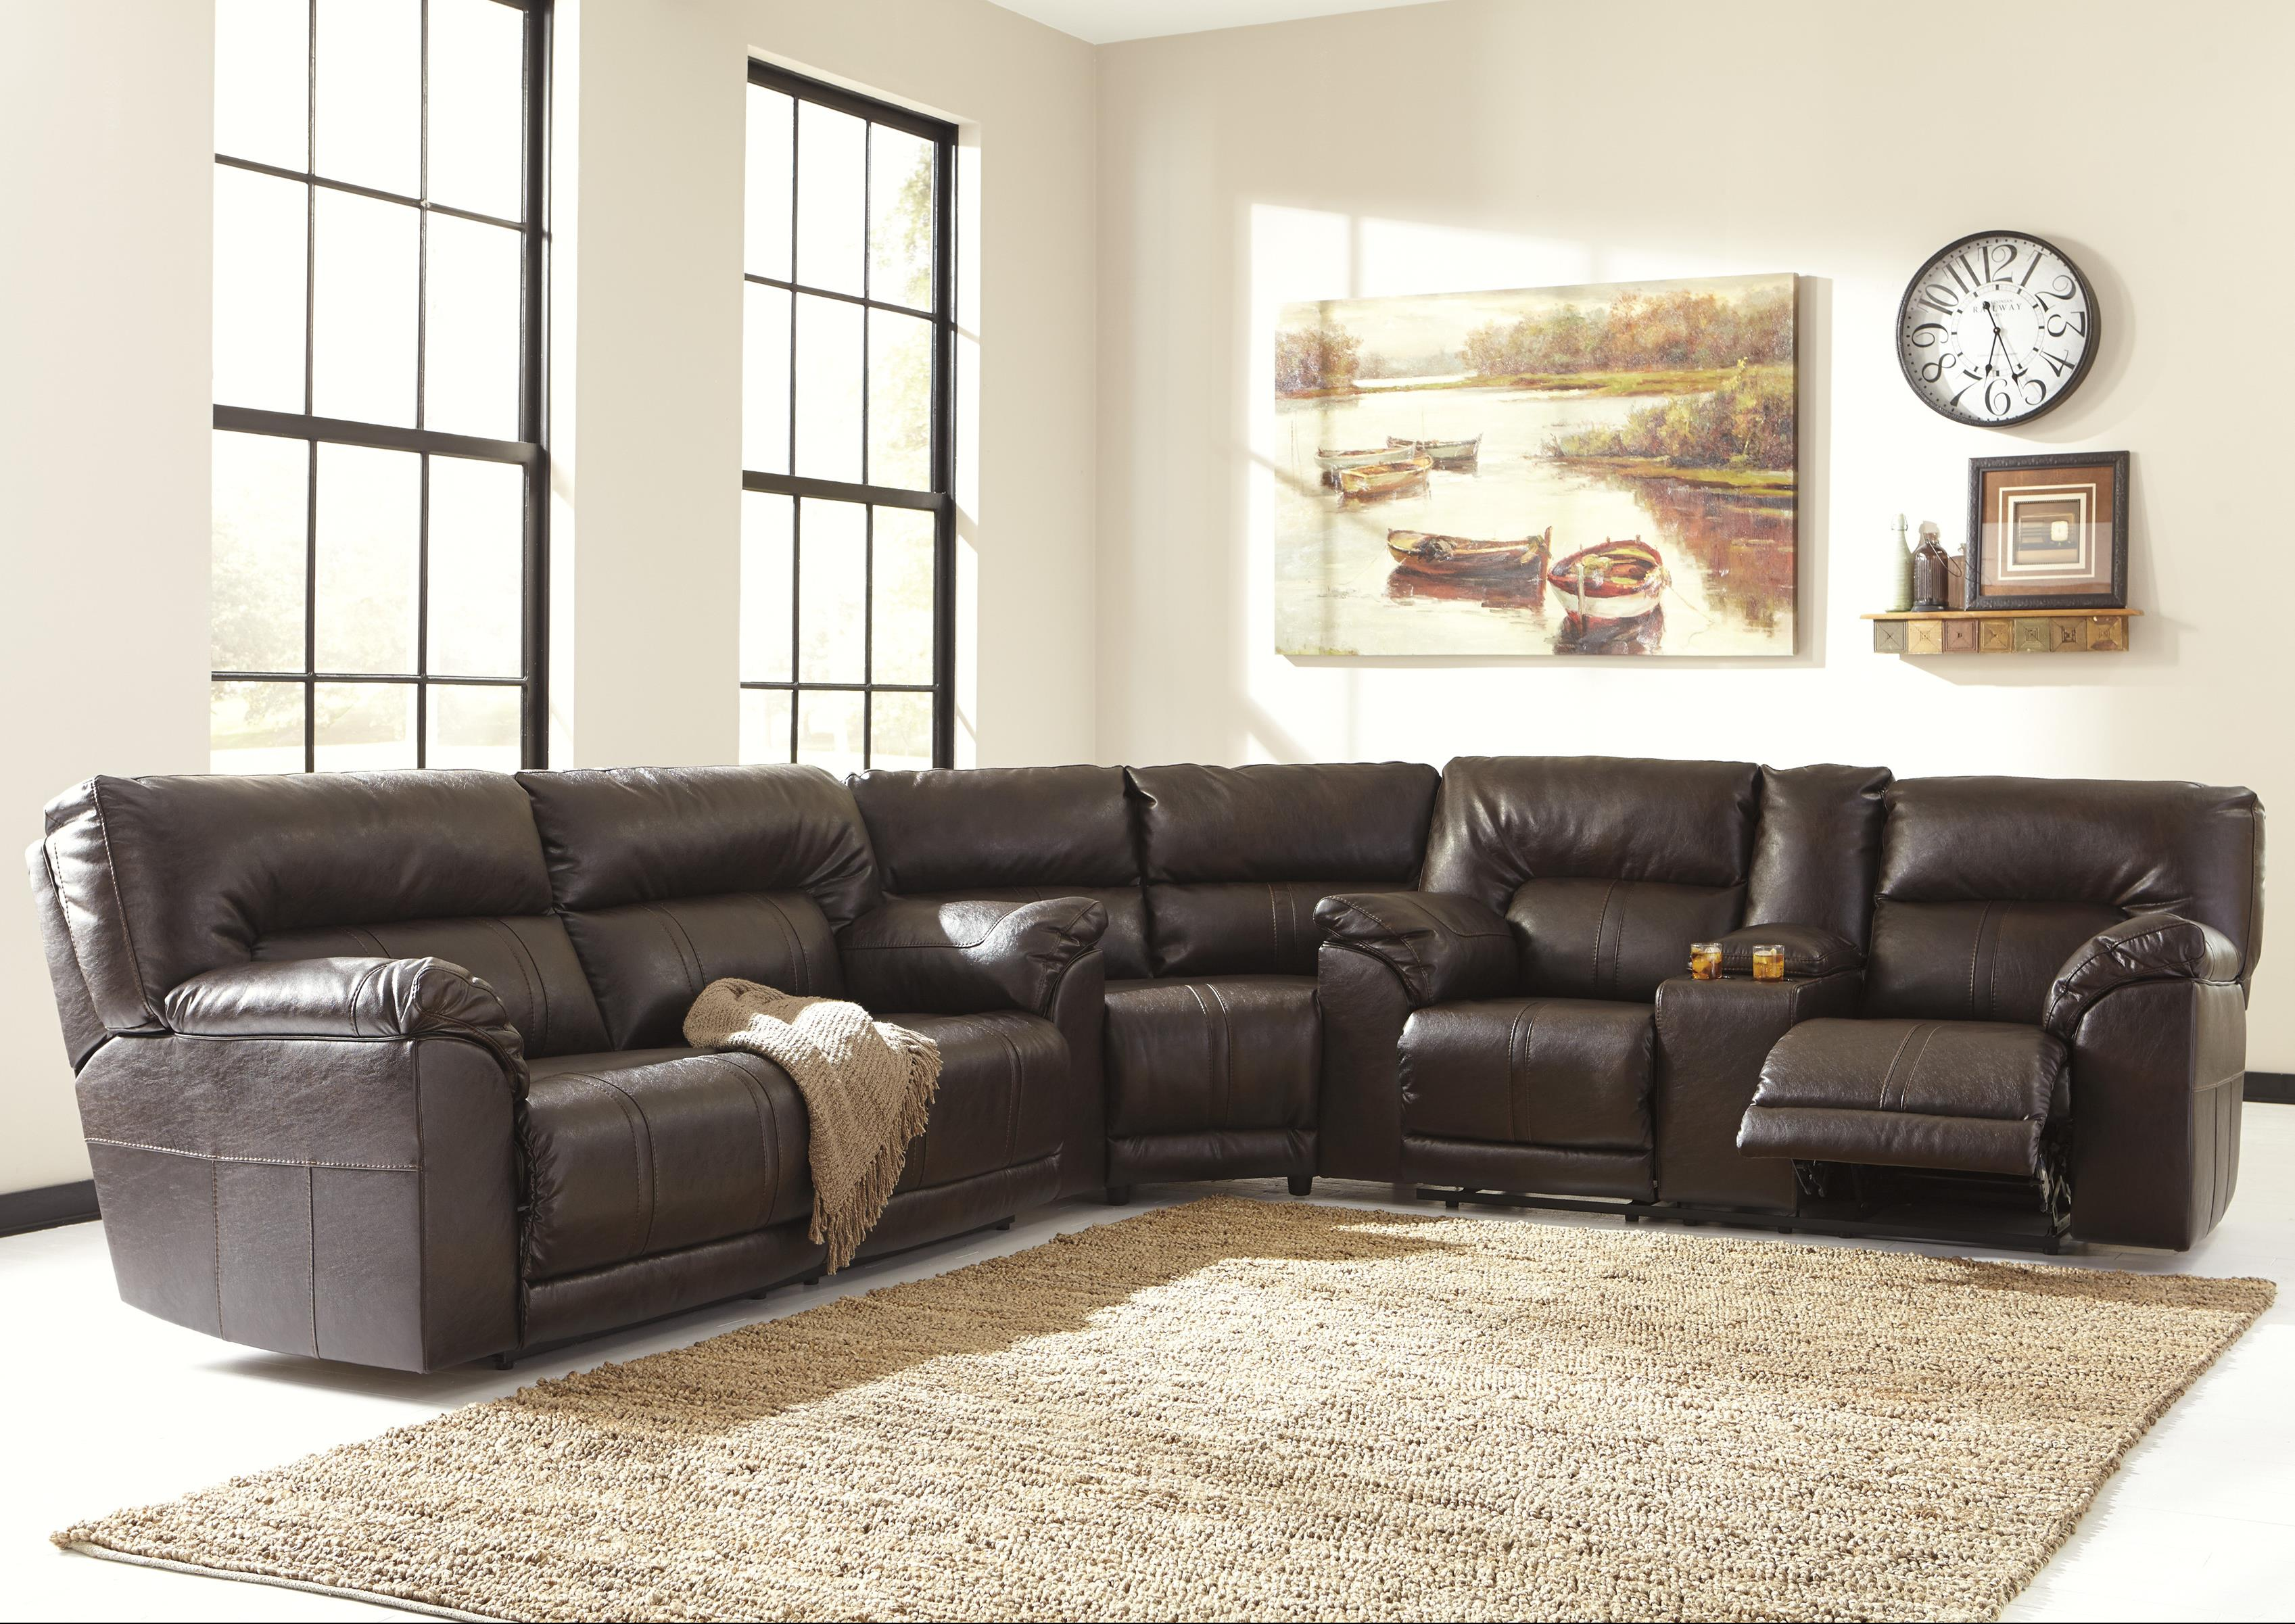 durablend sofa frankfort convertible sectional bed benchcraft barrettsville 3 piece reclining